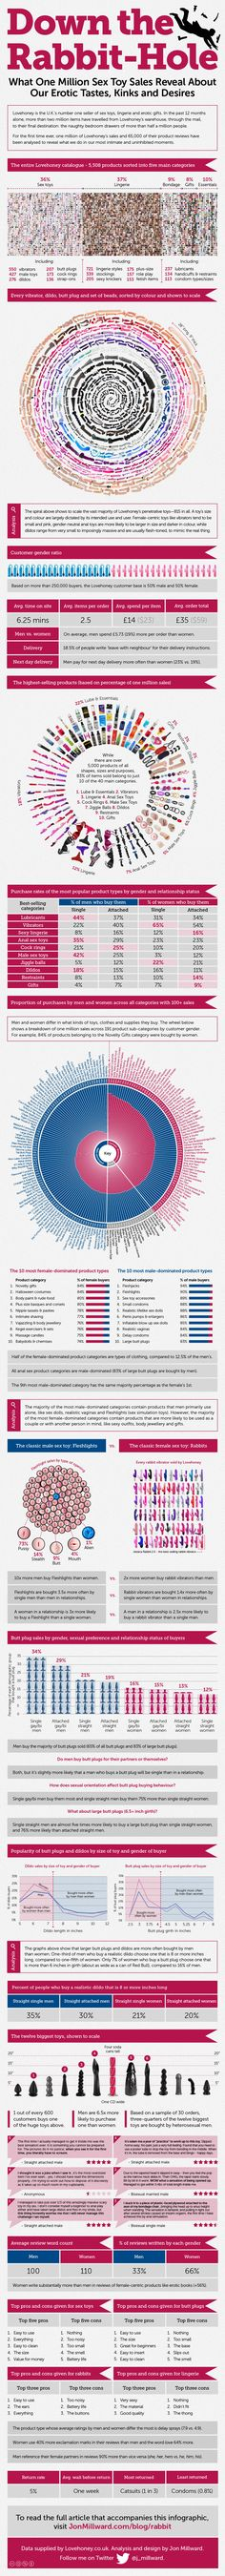 Down-the-Rabbit-Hole-Infographic #sextoys